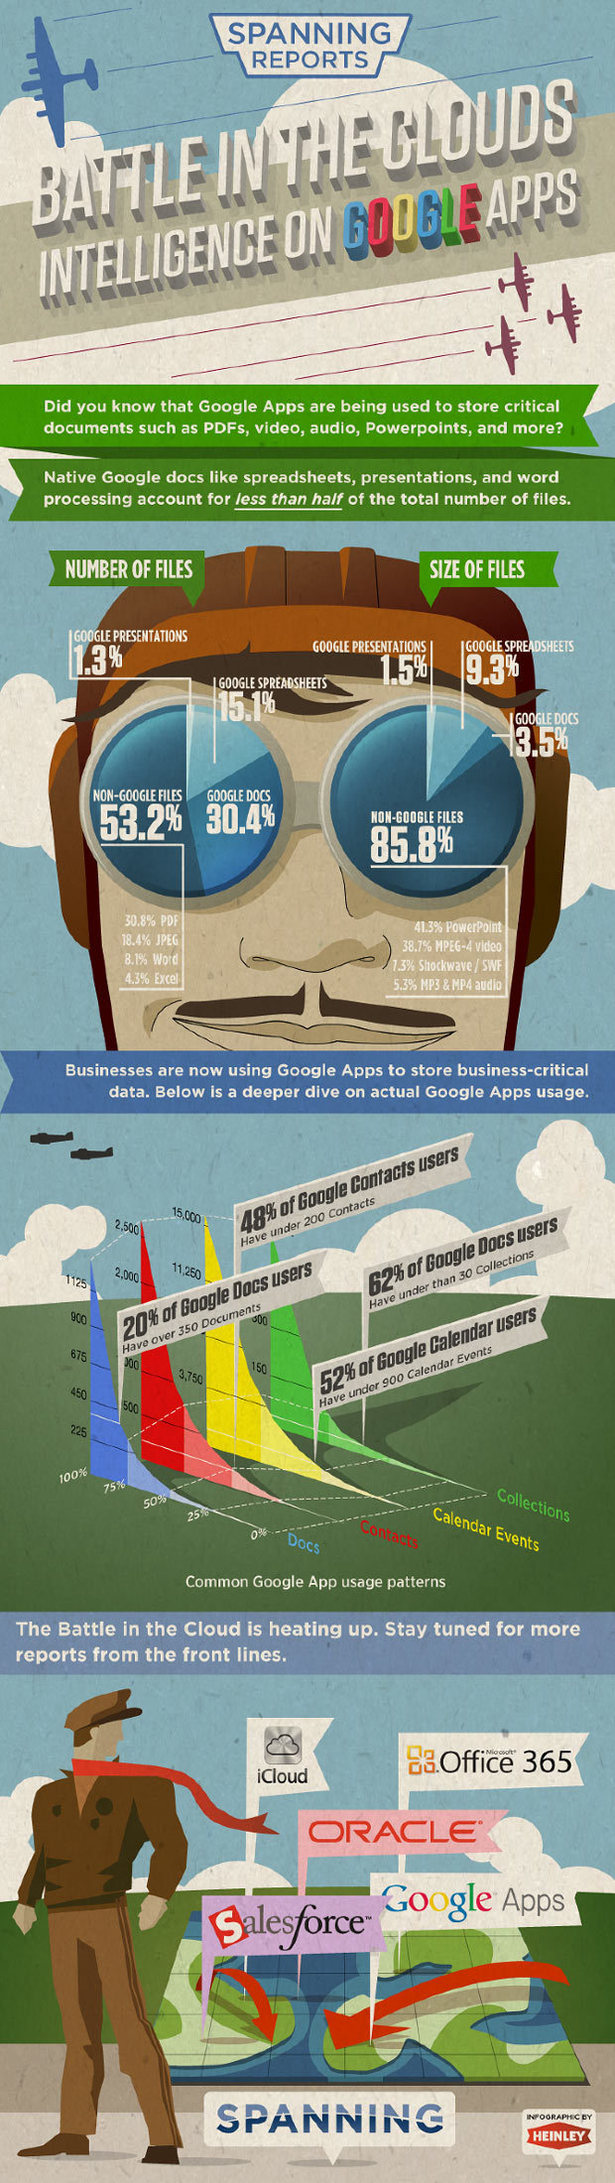 Intelligence-On-Google-Apps-infographic